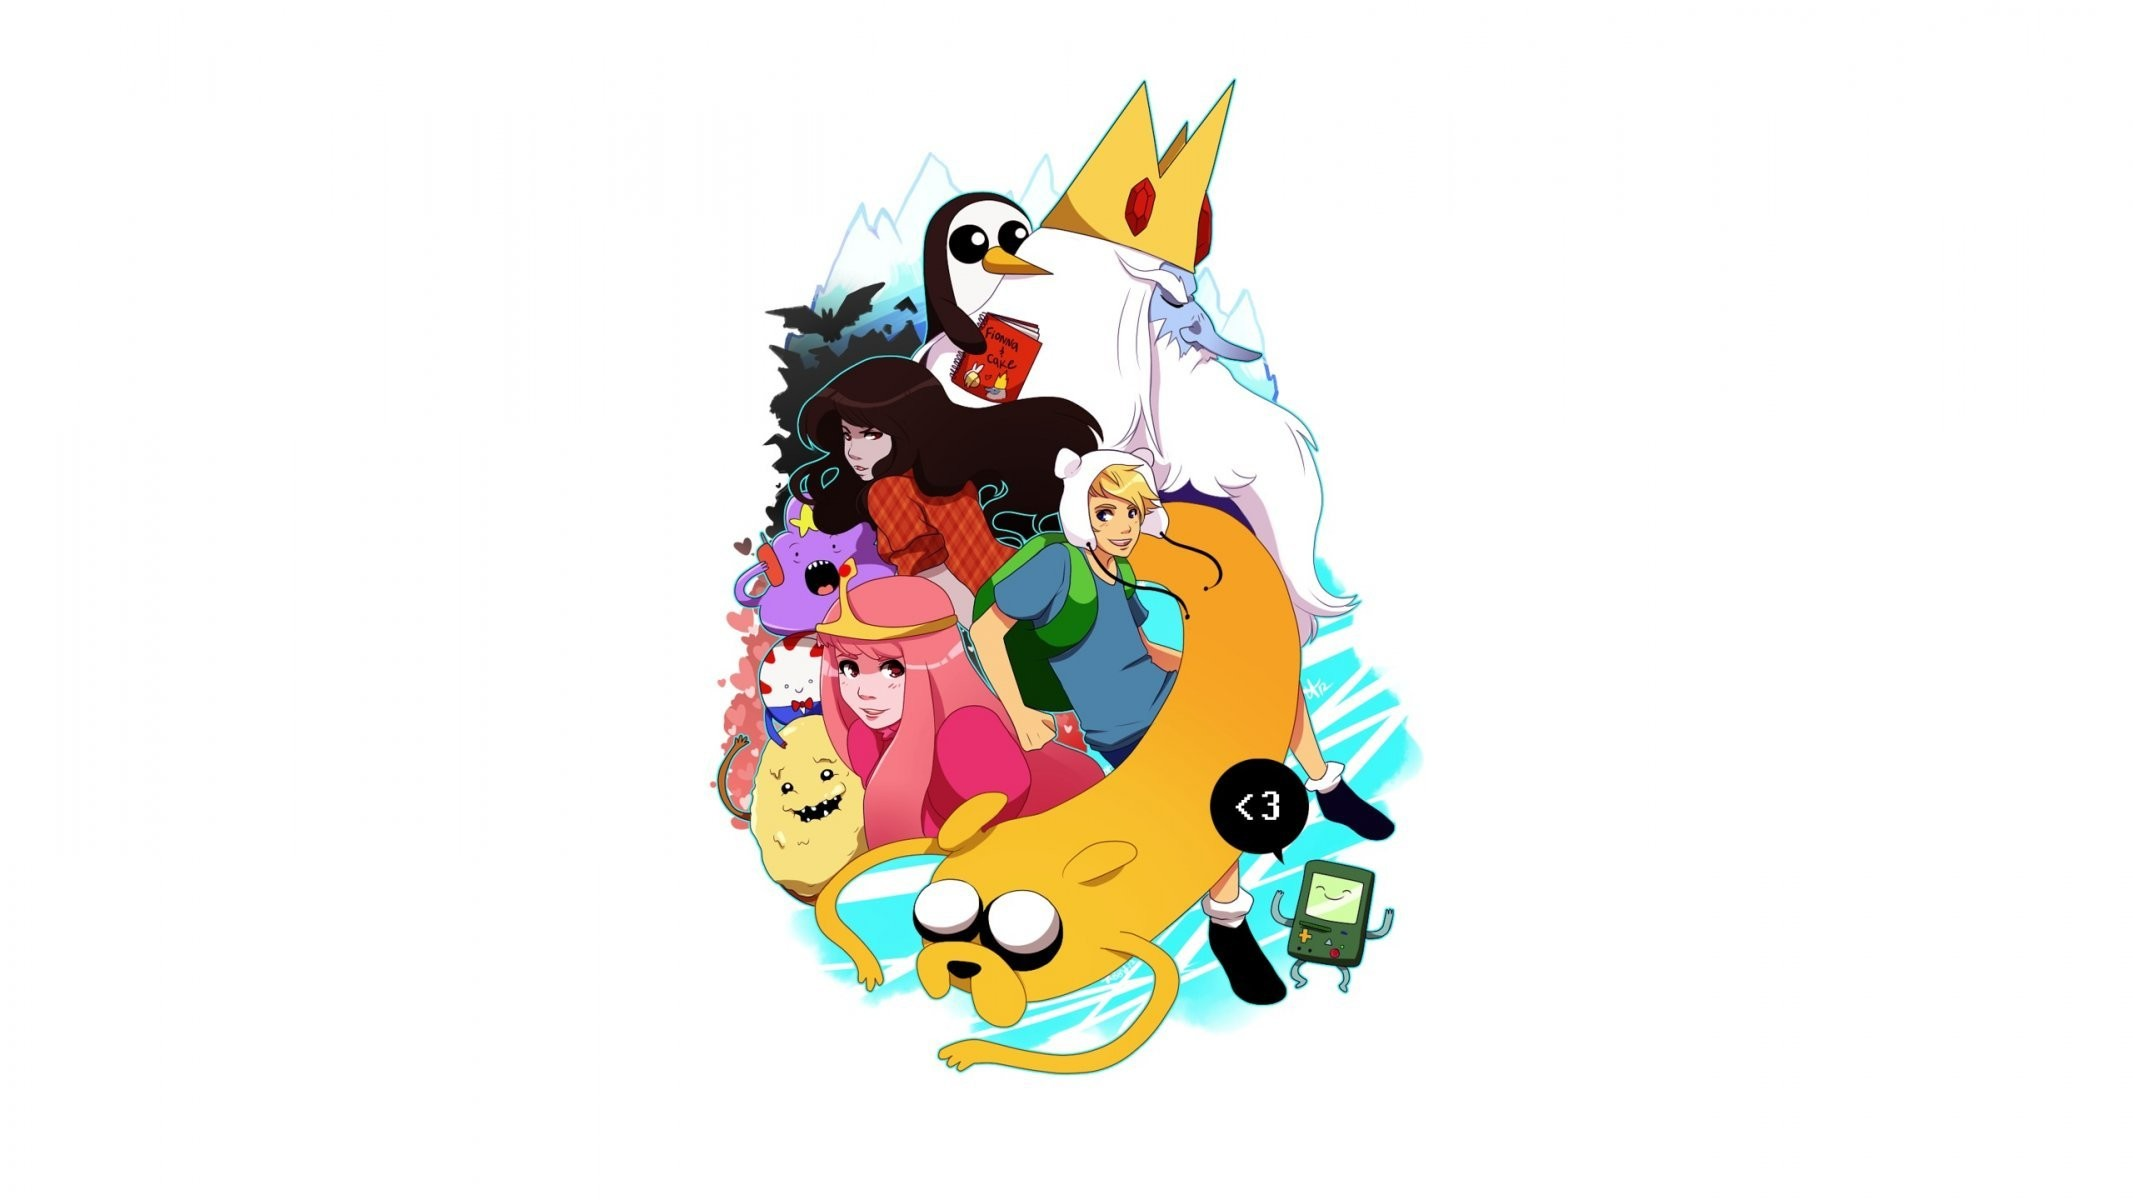 2133x1200 adventure time time adventures it's time adventures finn jake bmo anime  marceline